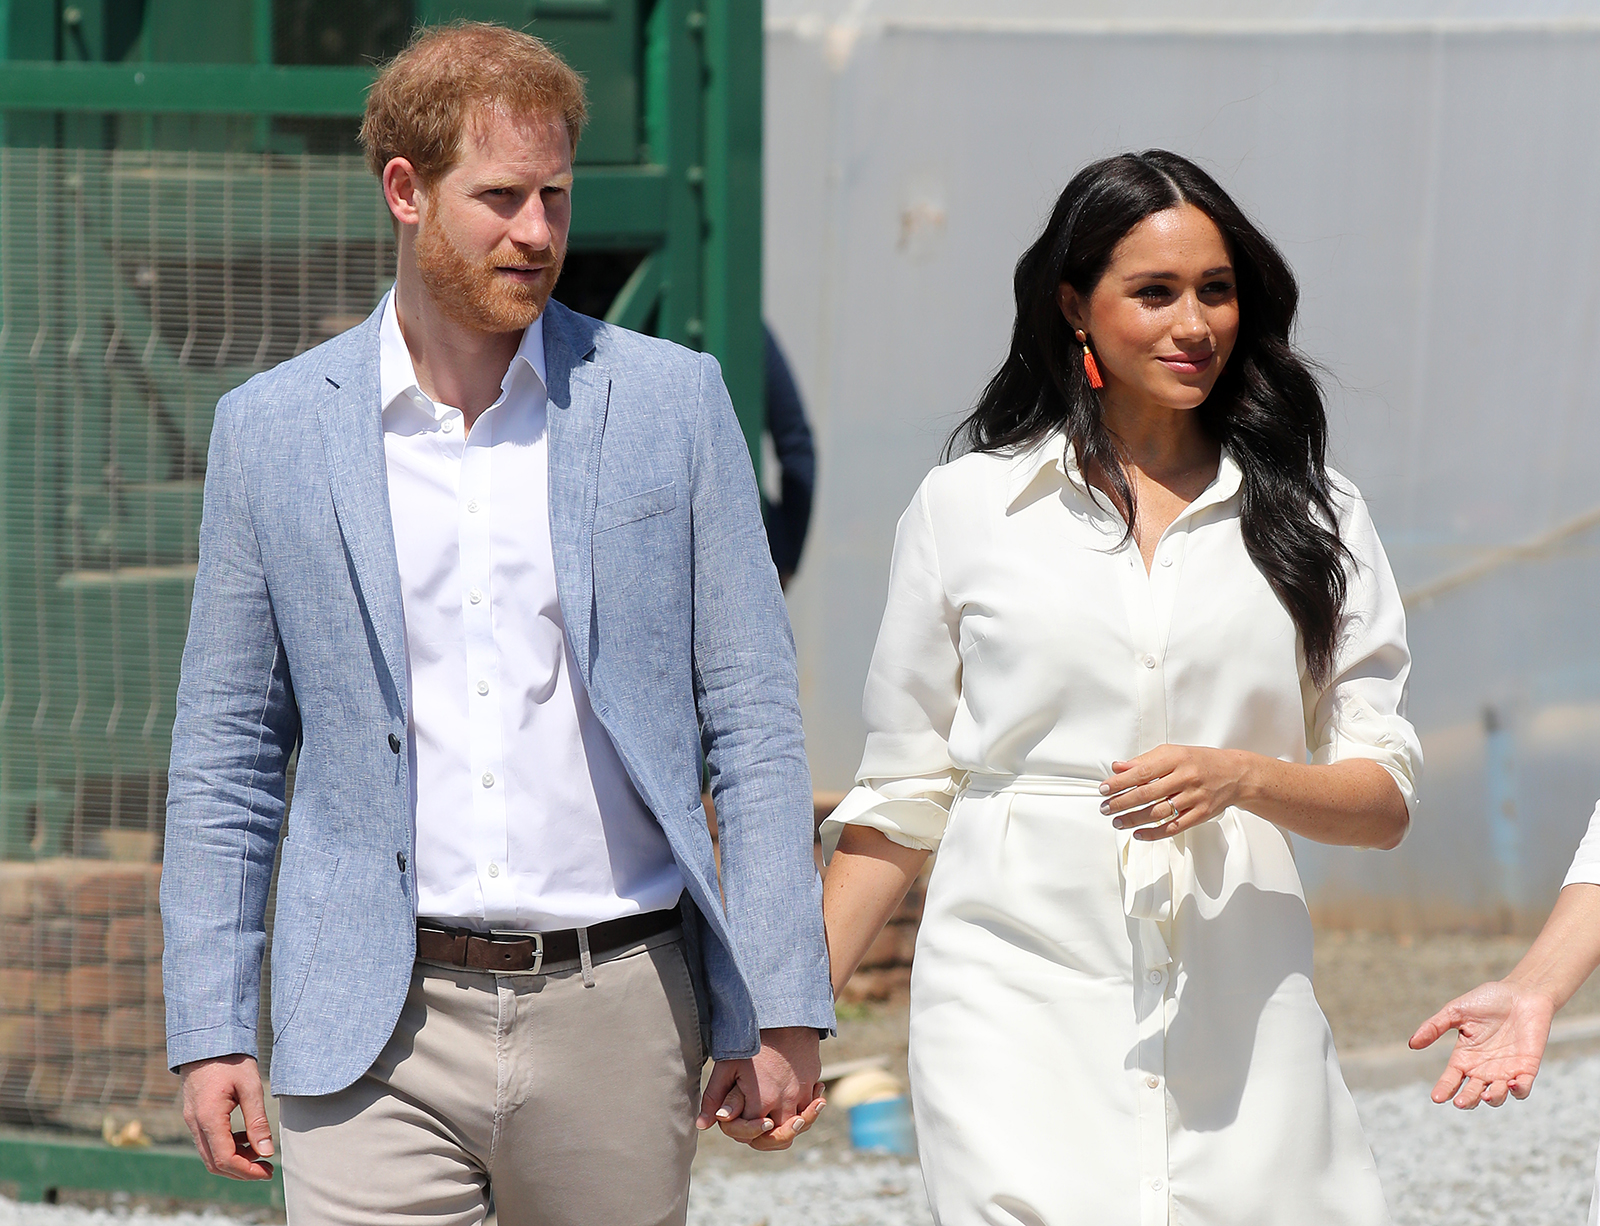 Prince Harry, Duke of Sussex and Meghan, Duchess of Sussex visit a township to learn about Youth Employment Services on October 2, 2019 in Johannesburg, South Africa.